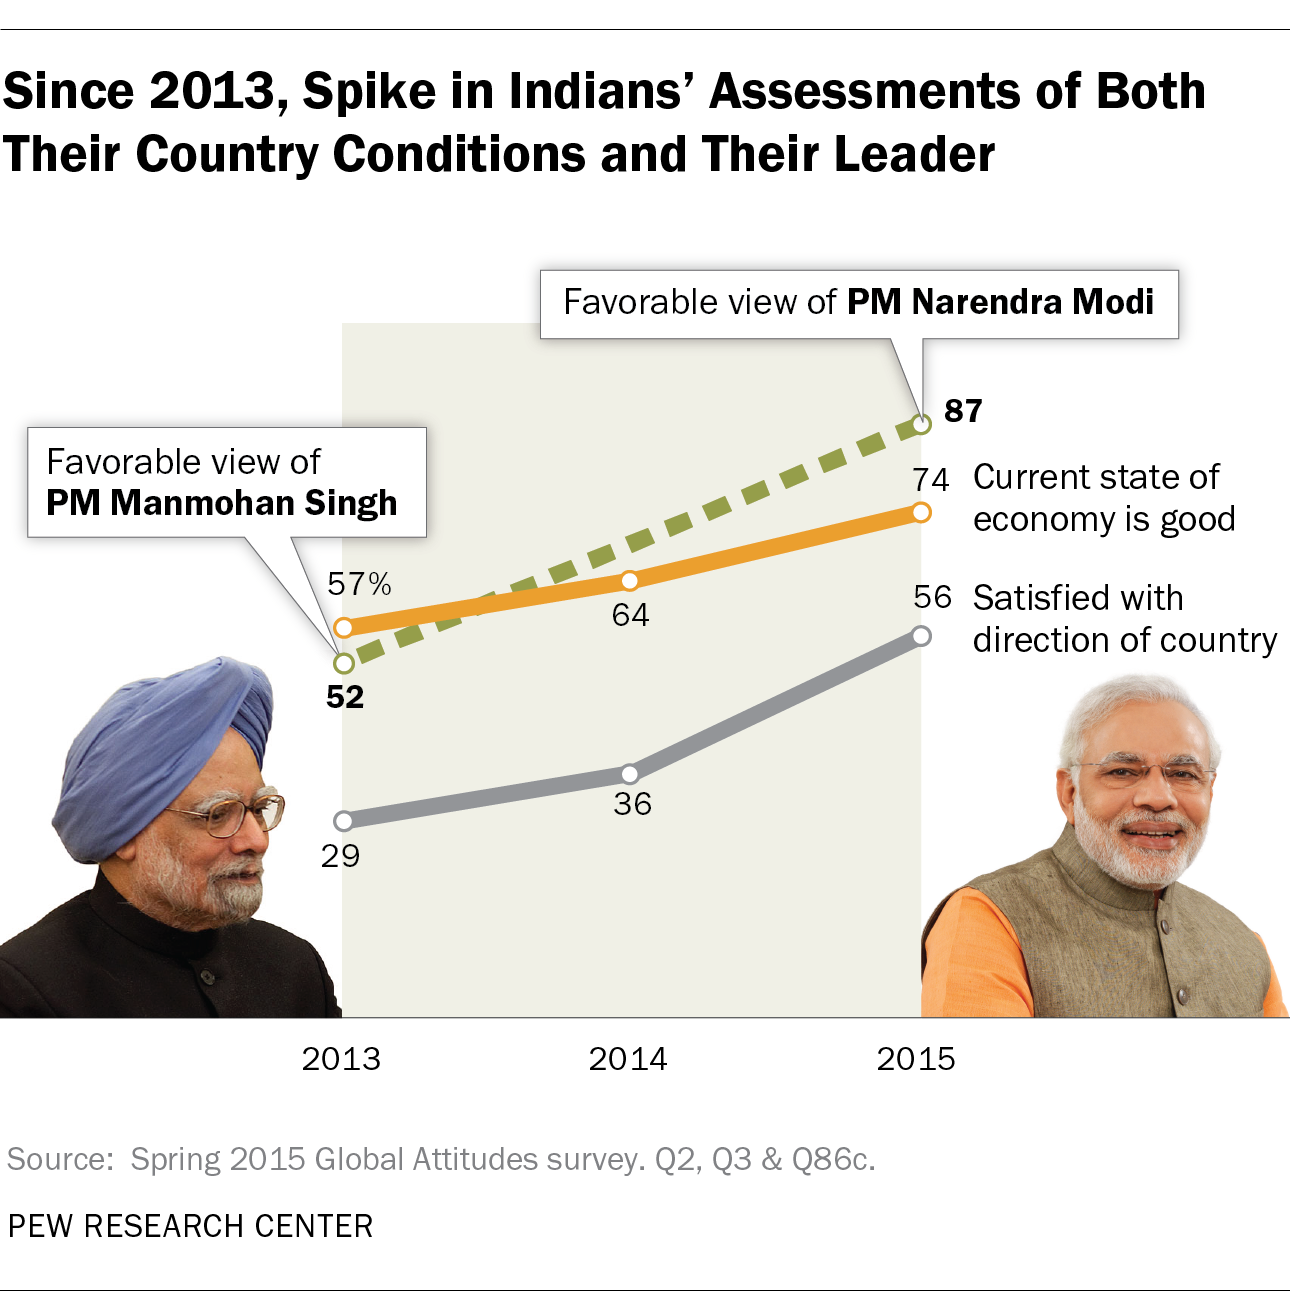 Since 2013, Spike in Indians' Assessments of Both Their Country Conditions and Their Leader